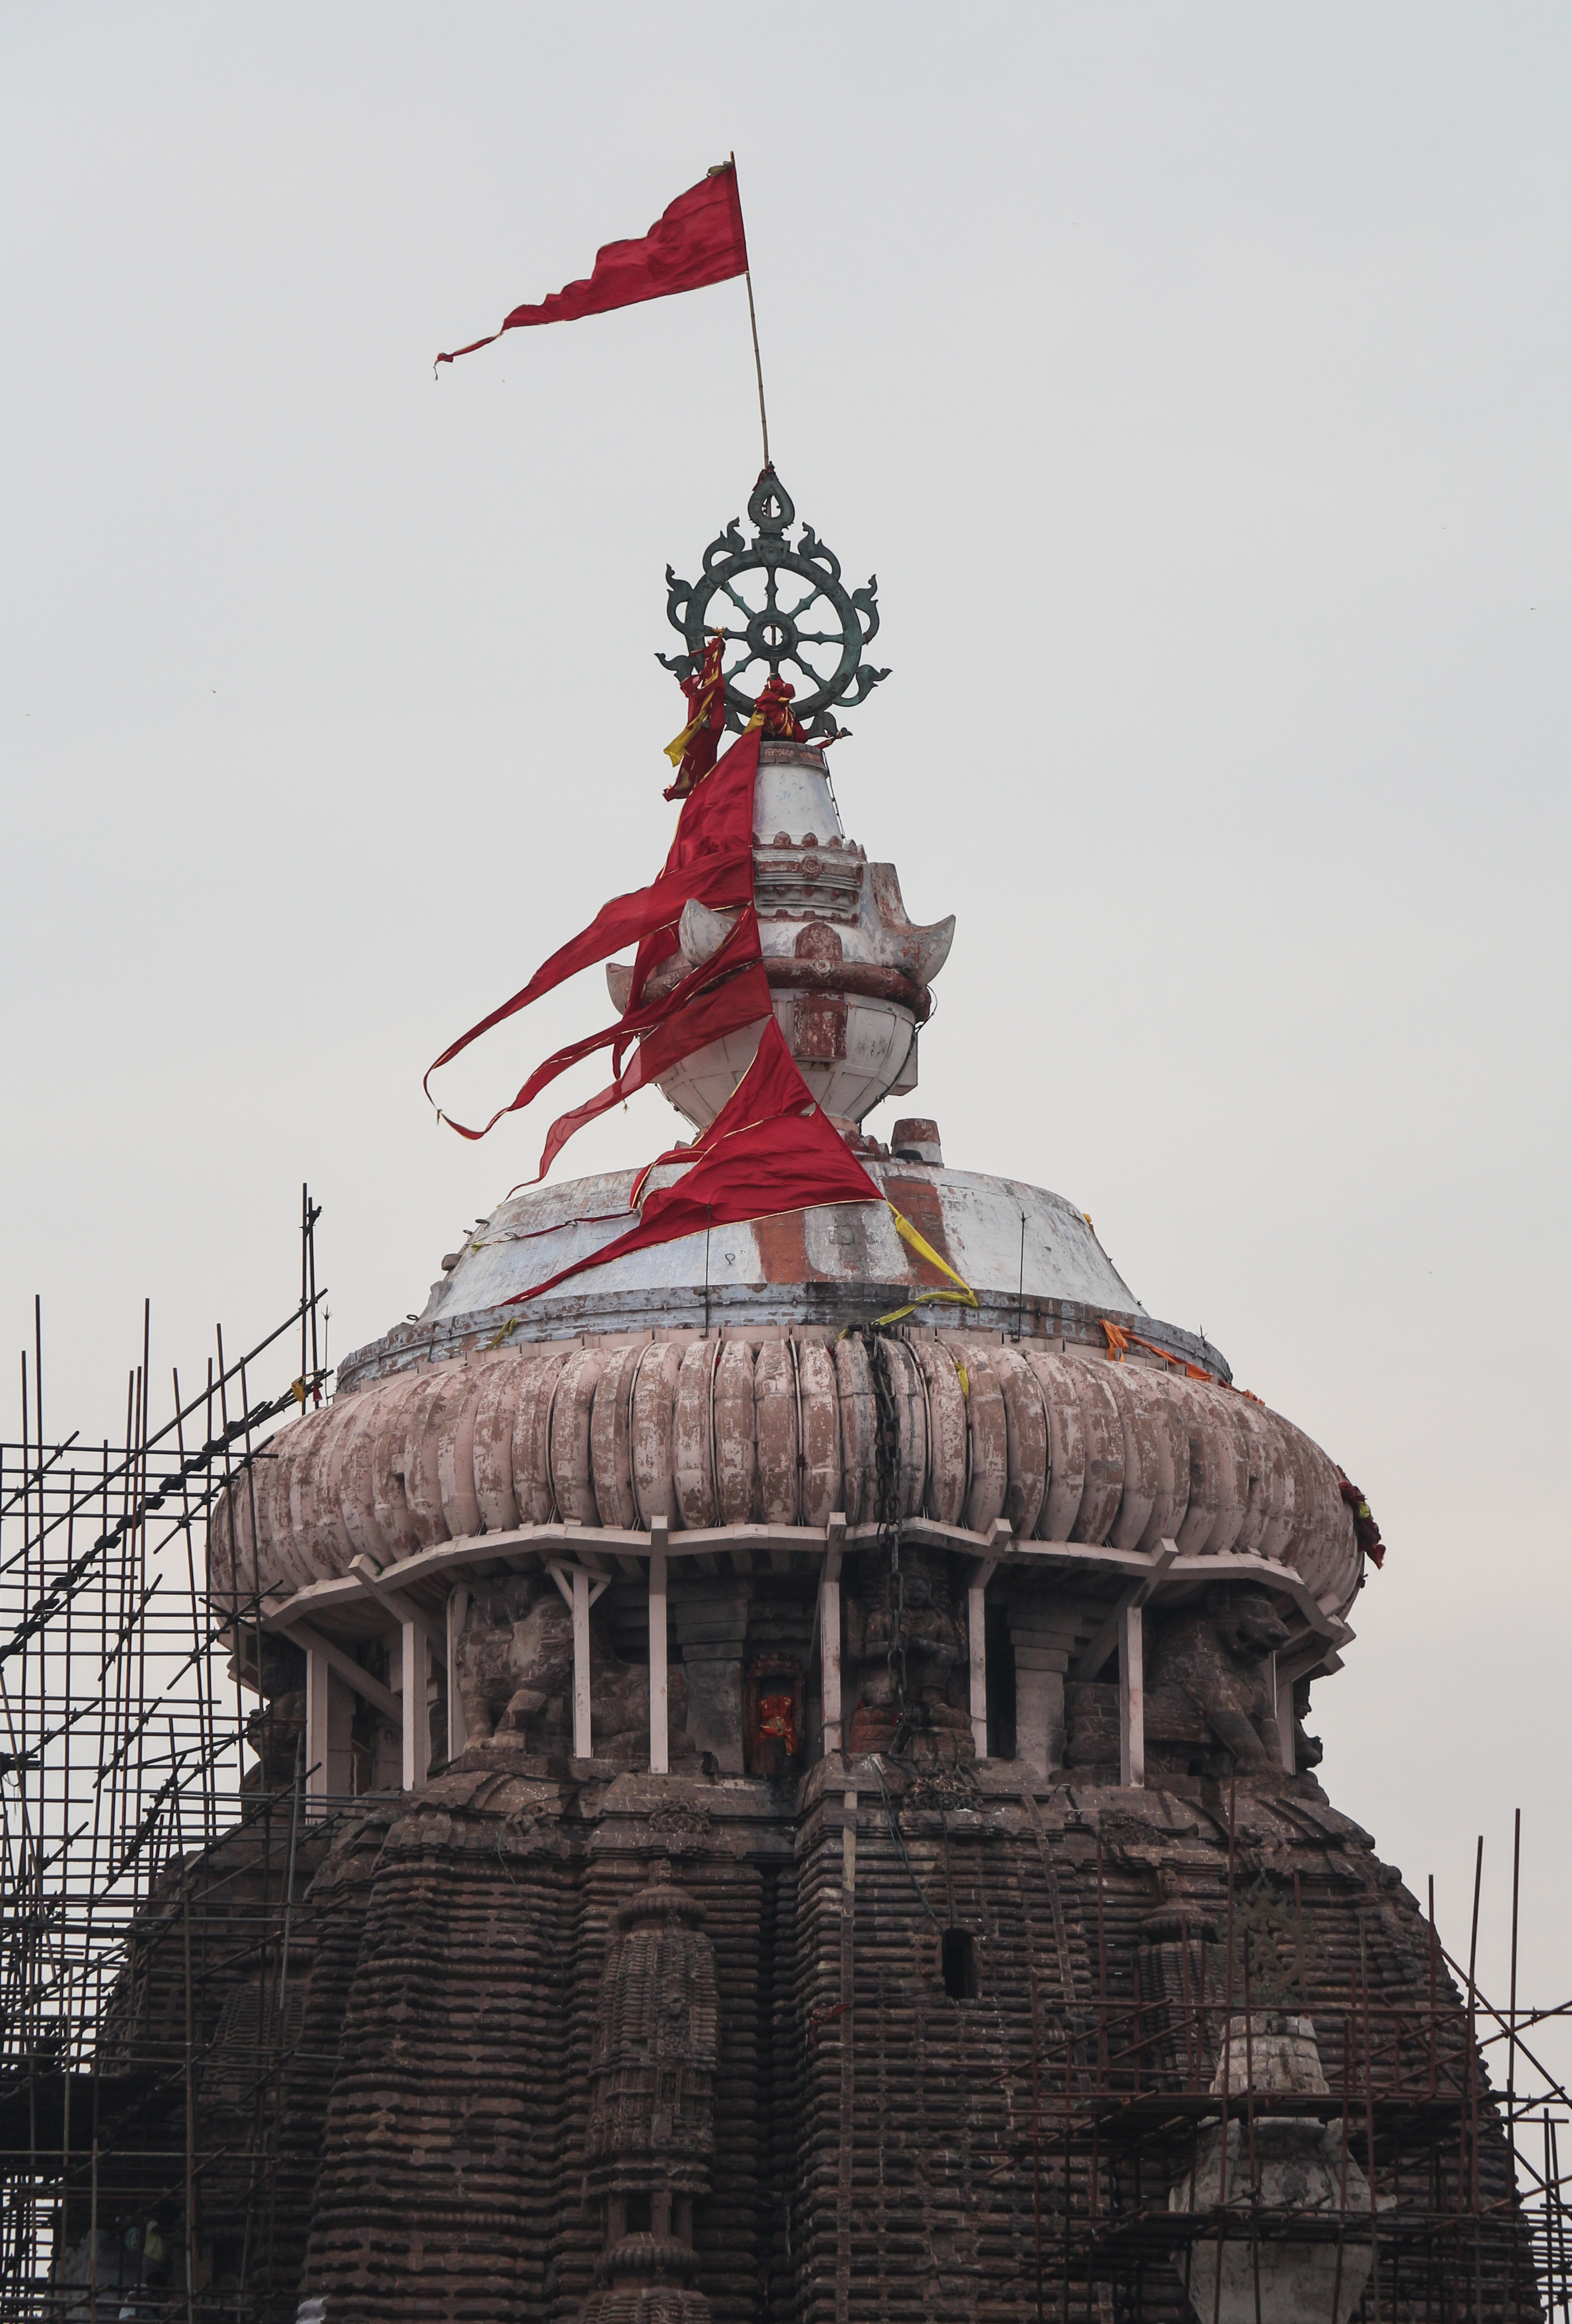 Mysterious Temples In World: 10 Most Amazing Mysteries Of Hindu Temples In India